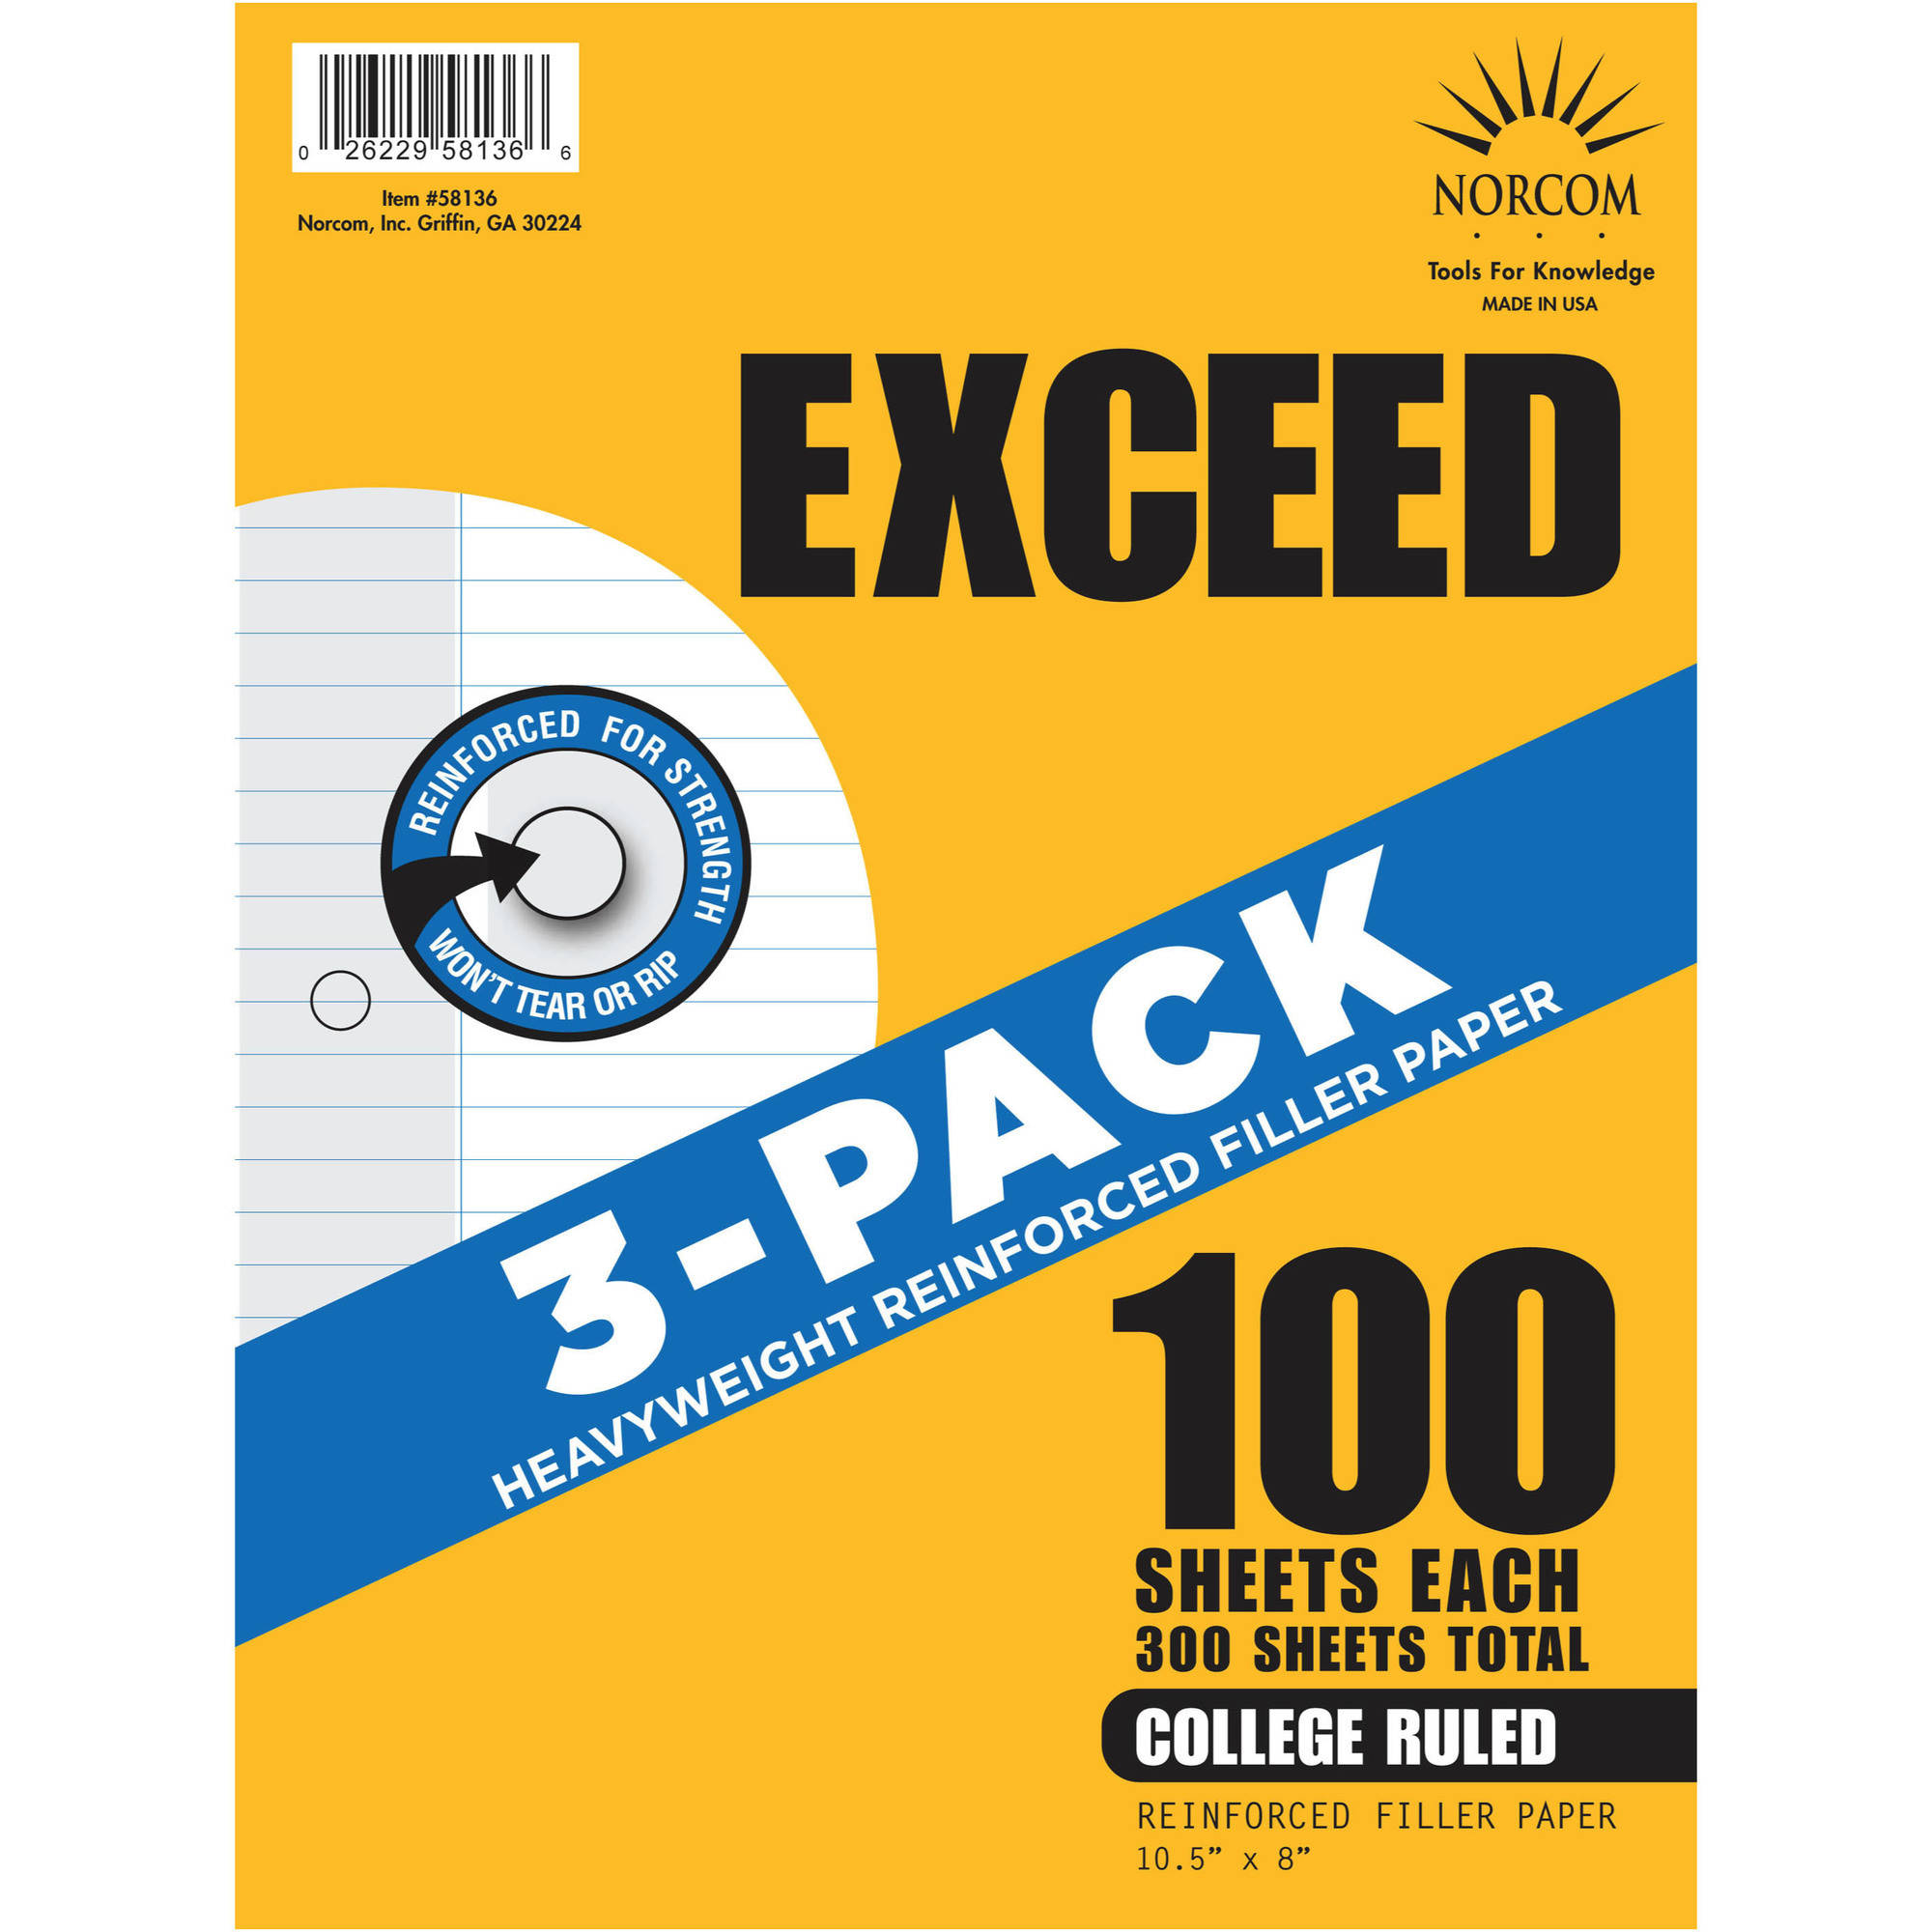 "Exceed 3-Pack Reinforced Filler Paper, College Ruled, 100 Sheets, 10.5"" x 8"""